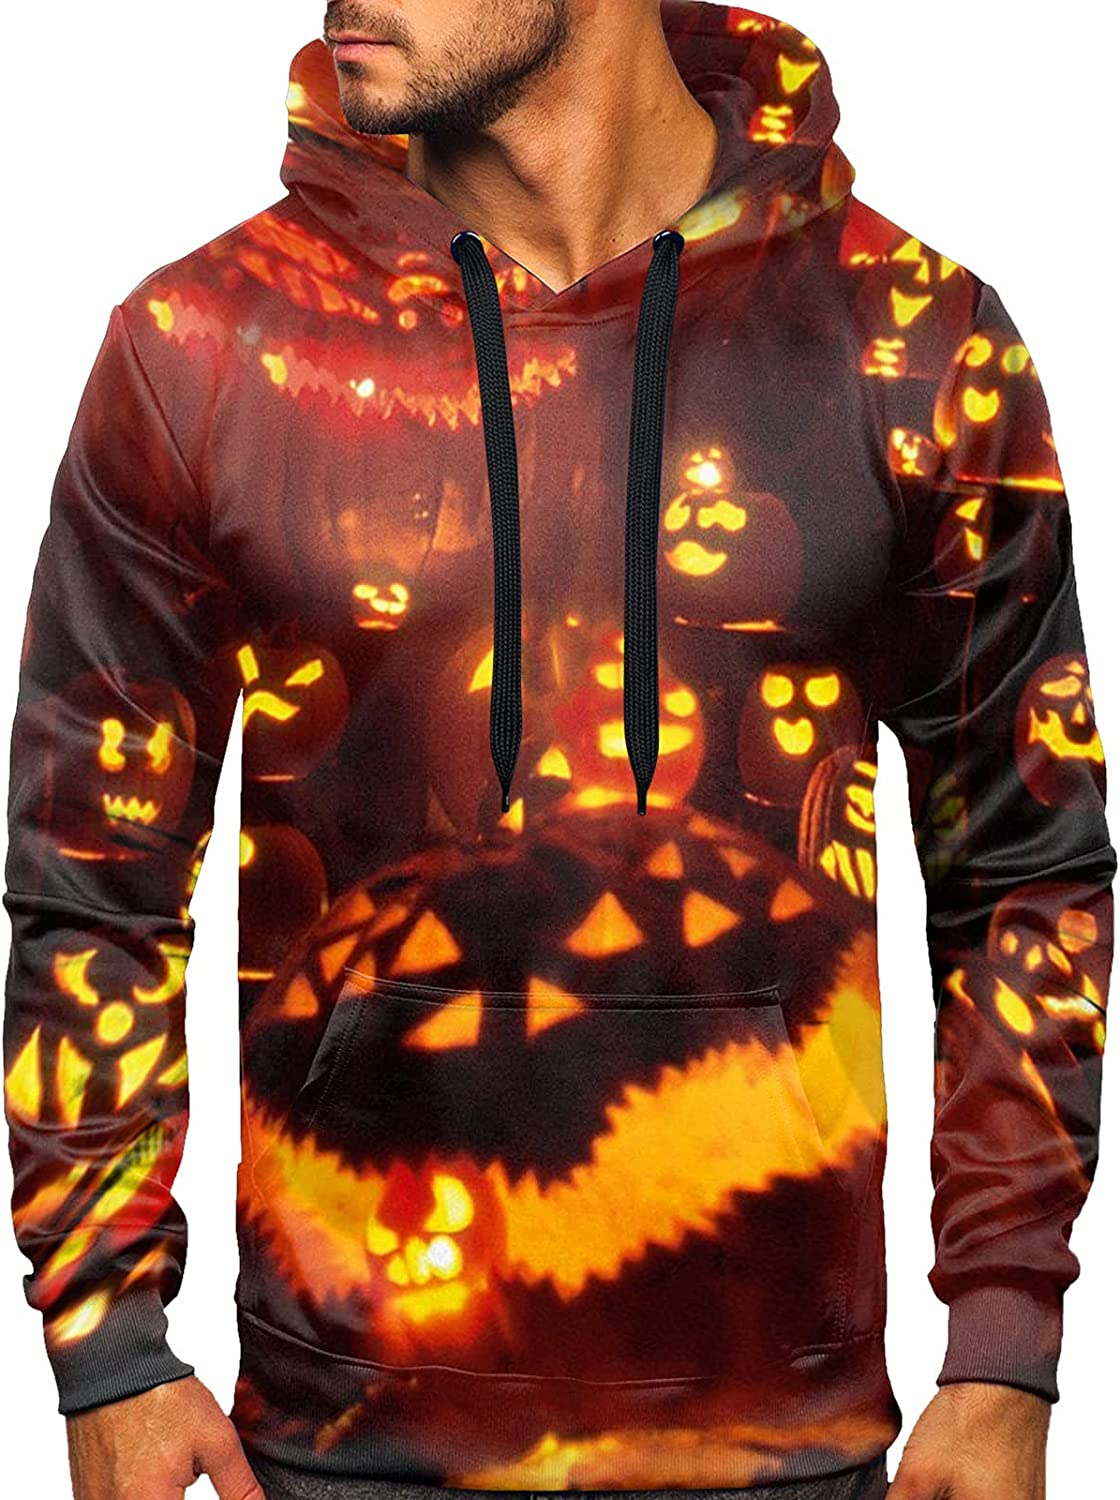 VEZARON Men's Casual Pullover Hooded Sweatershirts Halloween Funny 3D Digital Printed Patchwork Sweater Long Sleeve Top